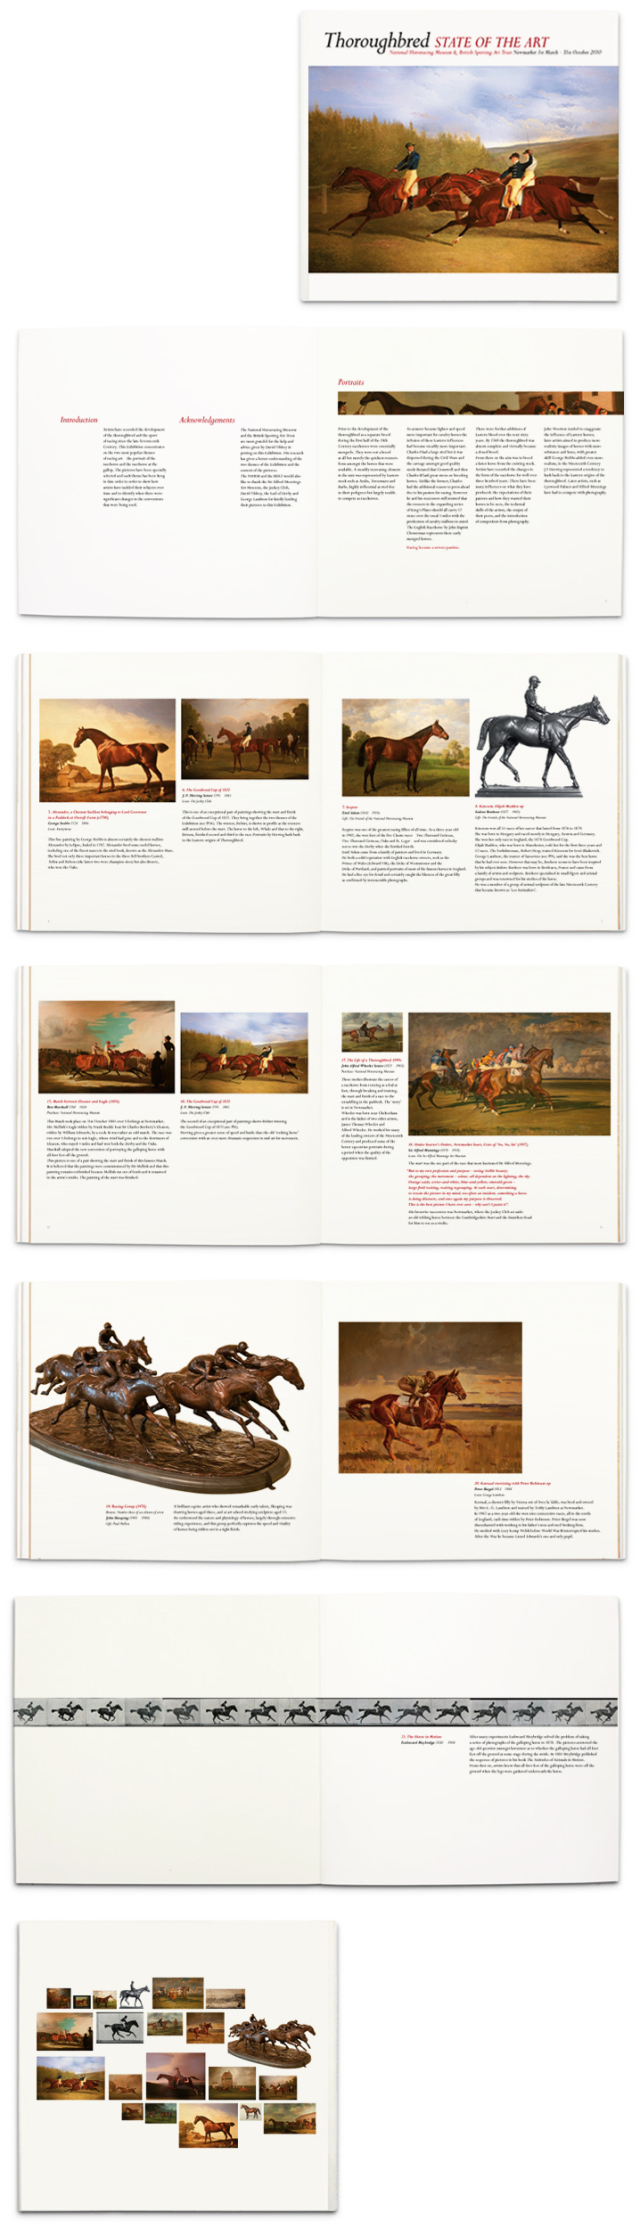 thoroughbred_catalogue_2010